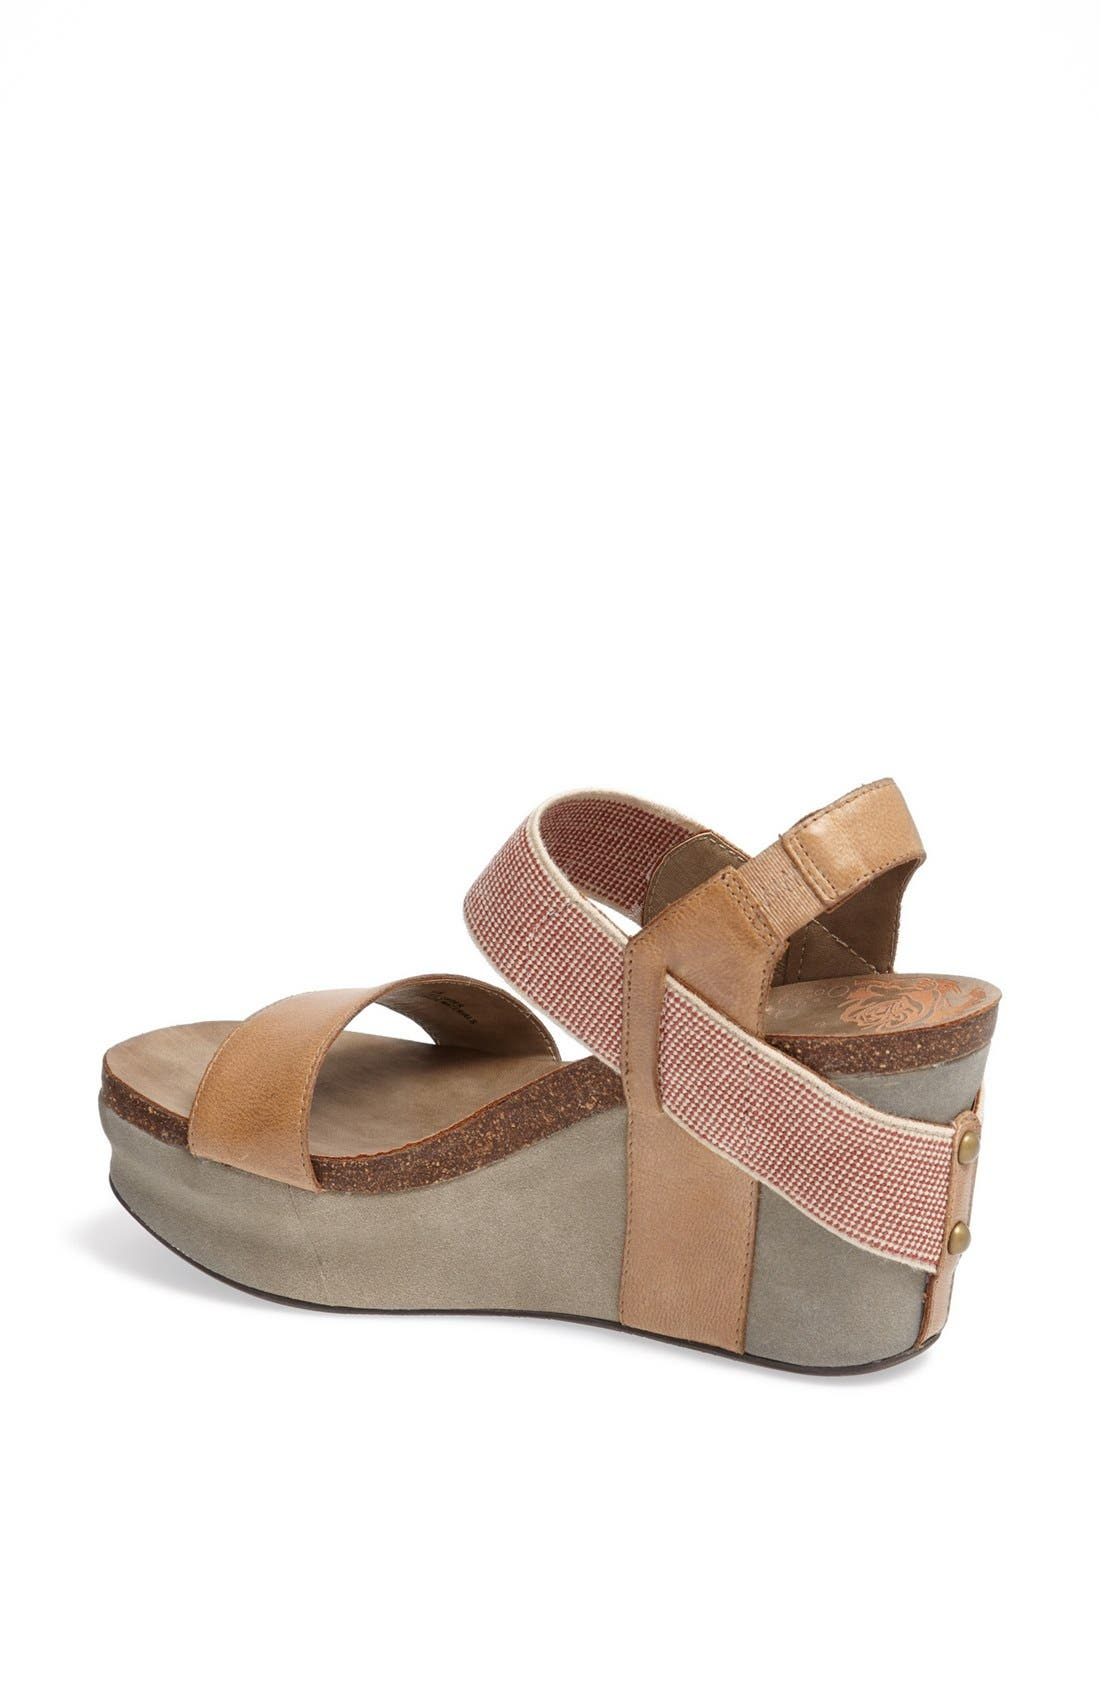 'Bushnell' Wedge Sandal,                             Alternate thumbnail 48, color,